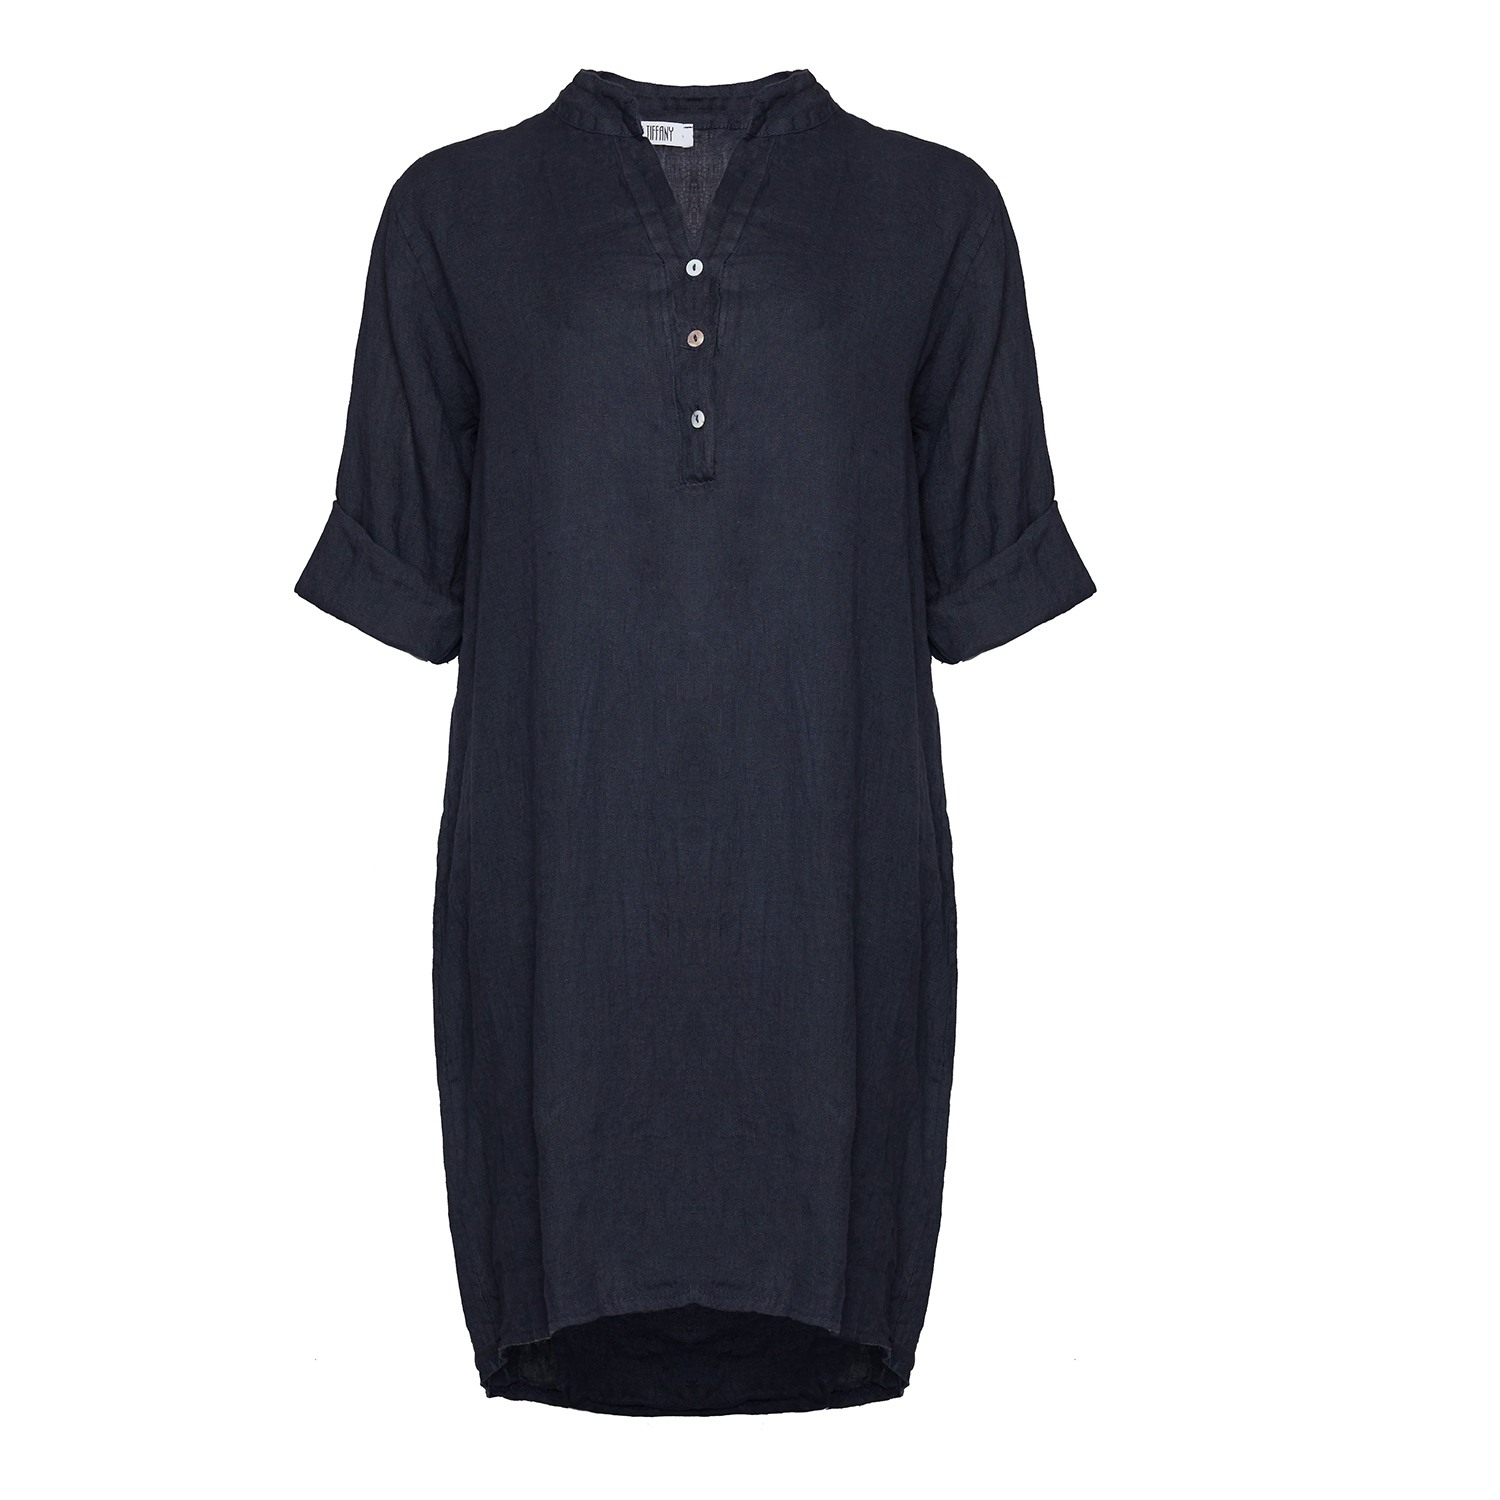 Billede af Tiffany 17690 Shirt/dress Linen, Blue Navy